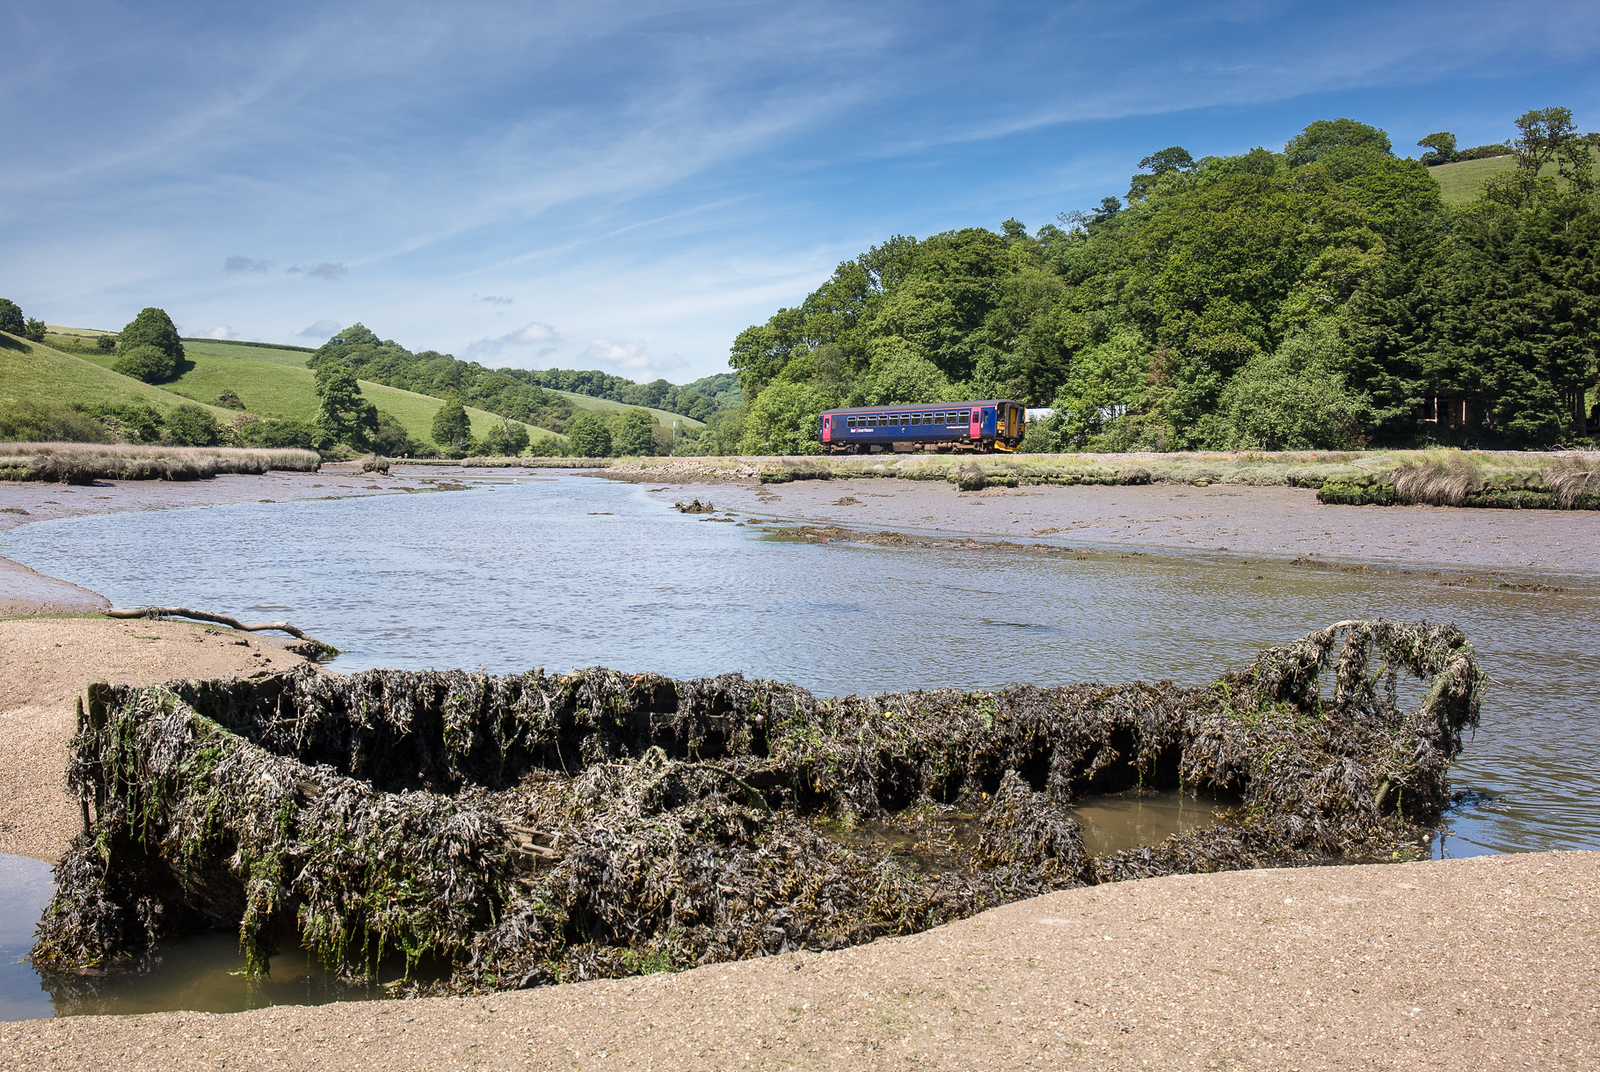 010617  153369  approaches  Terras crossing with a service to Looe.